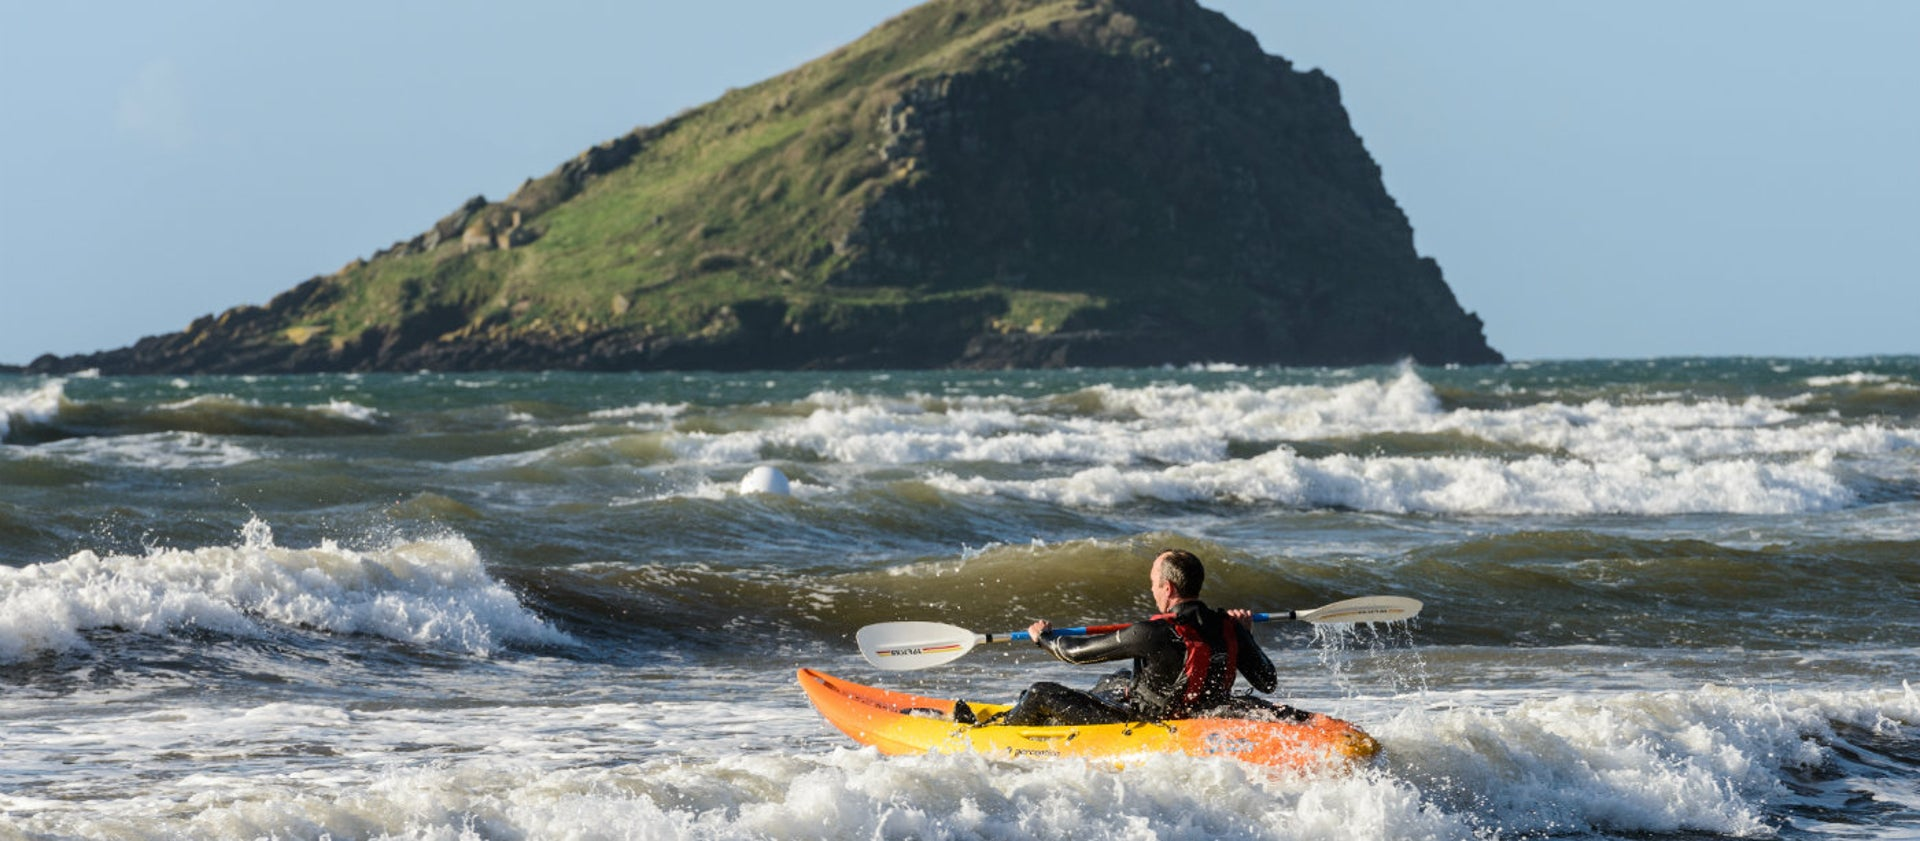 Watersports at Wembury | National TrustVisit our Facebook pageVisit our Twitter pageVisit our